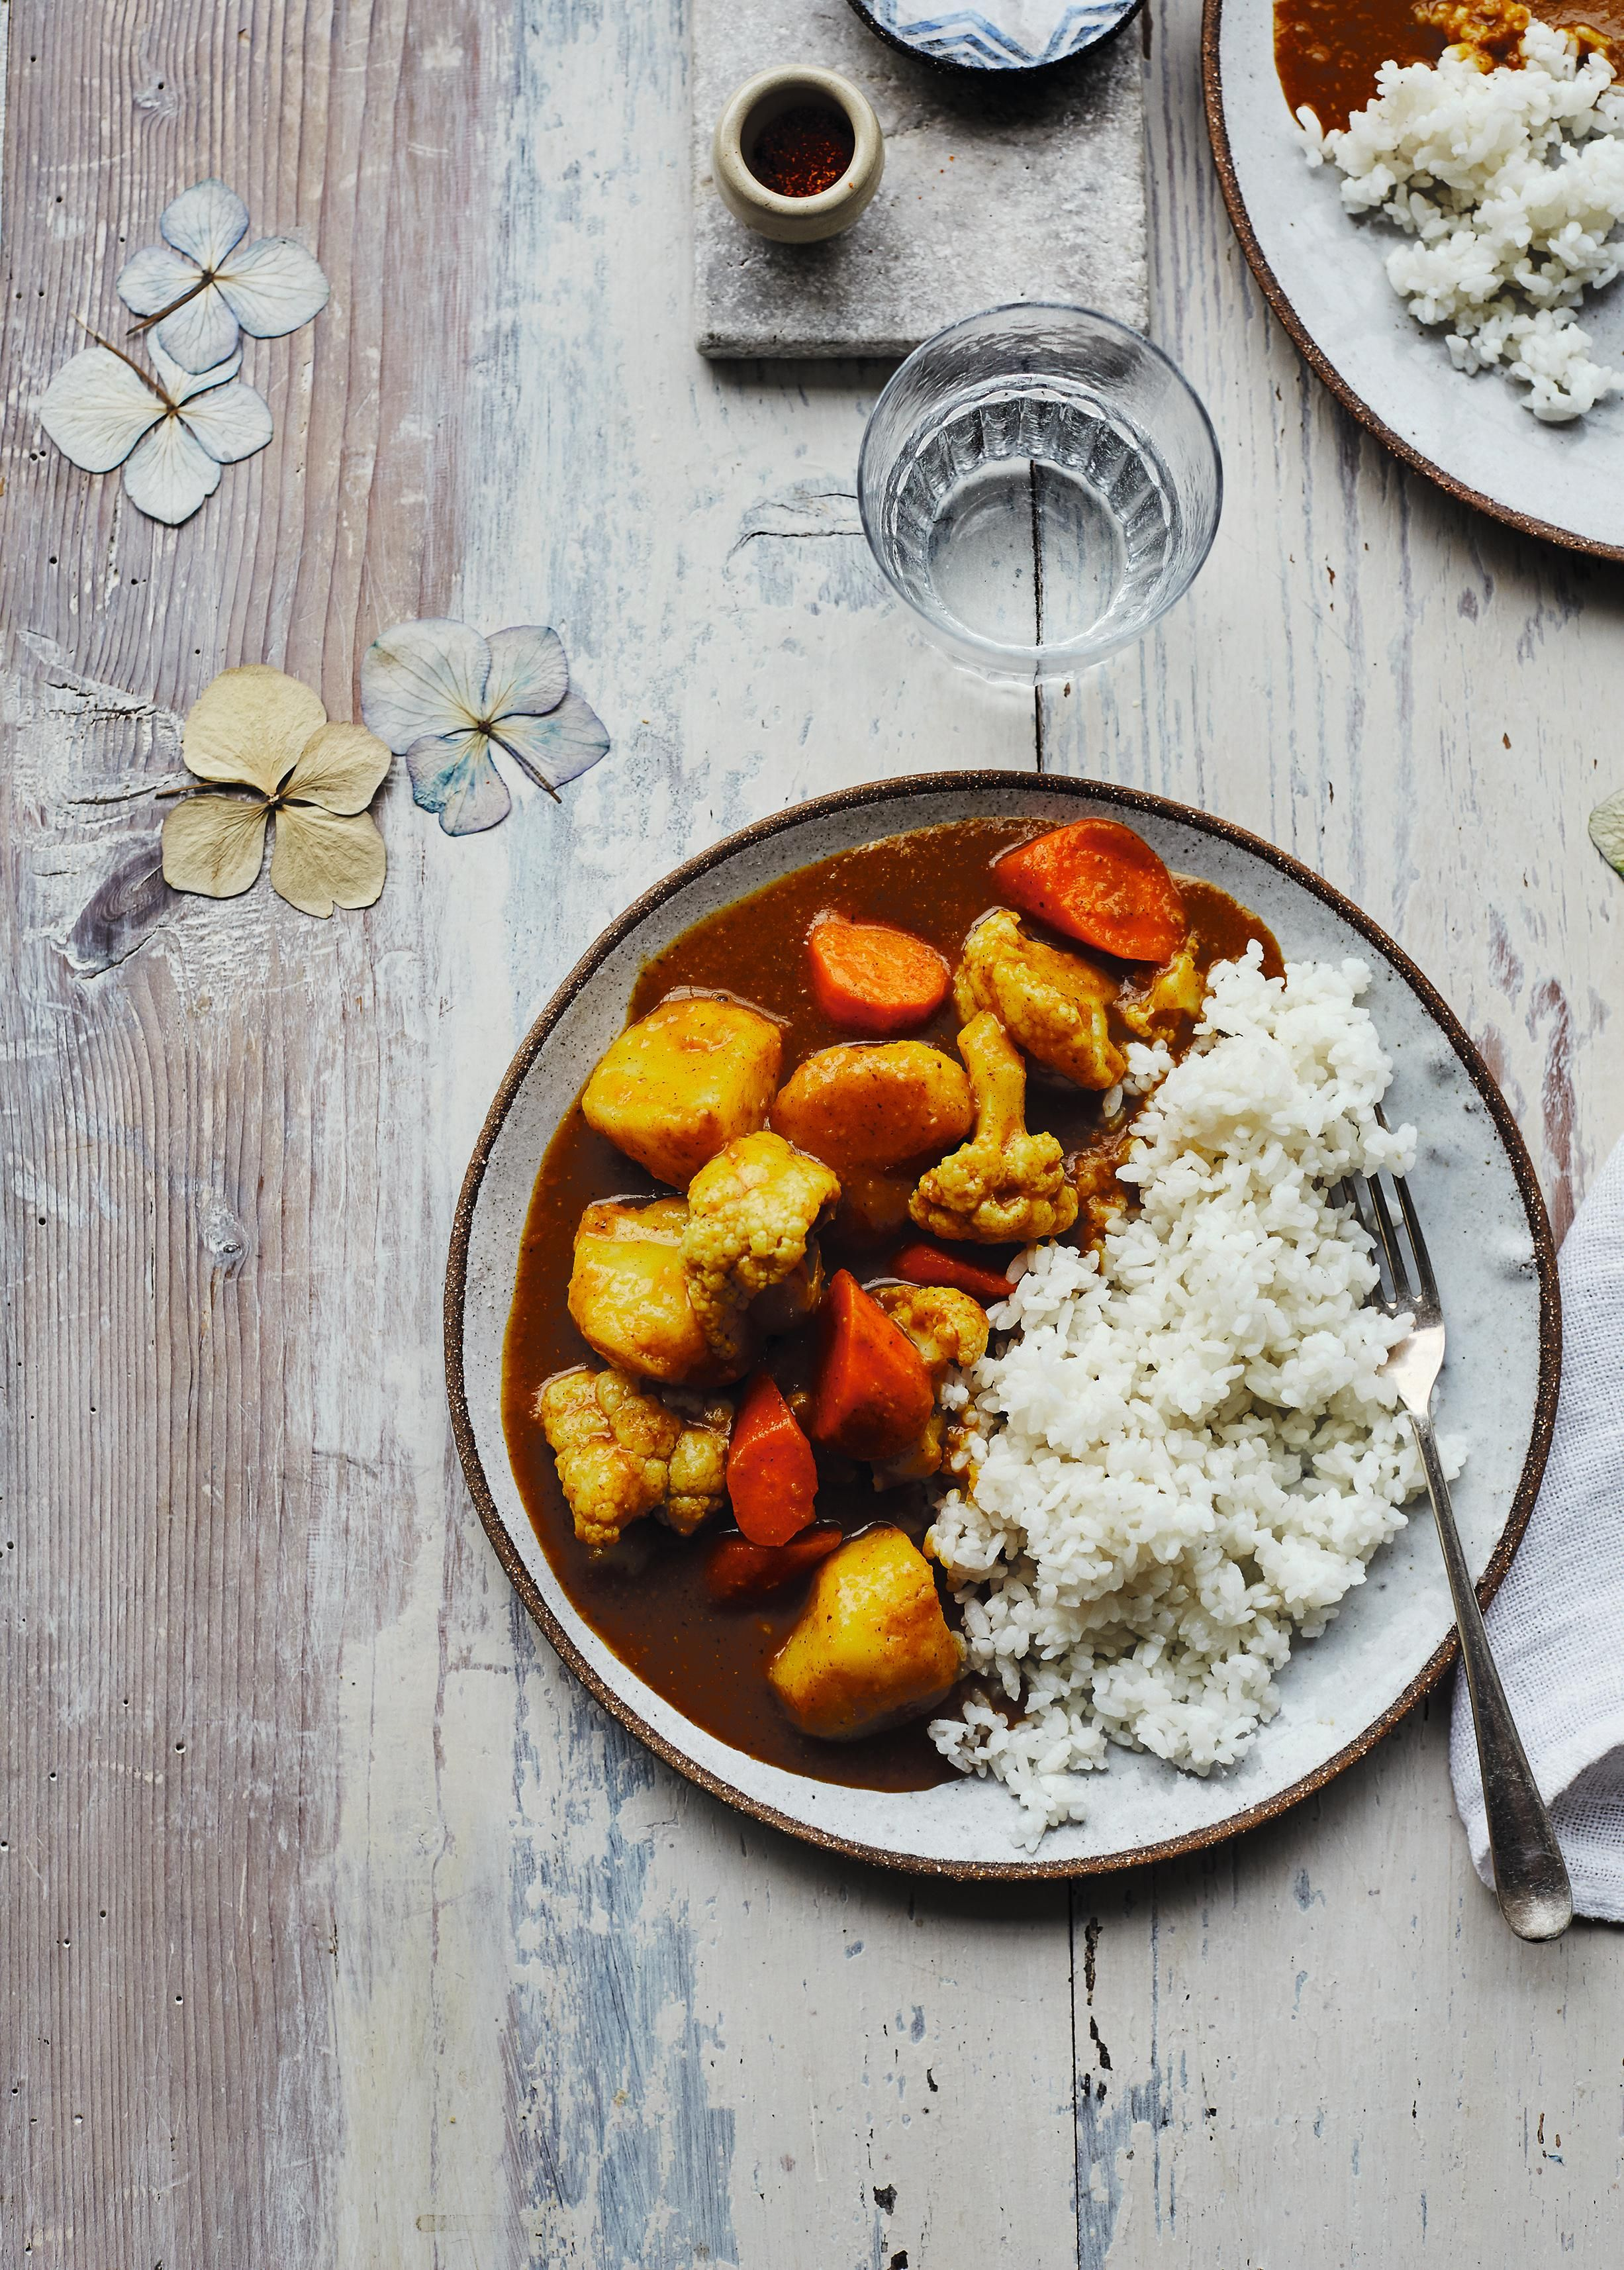 Tim Anderson S Kitchen And His Recipe For Chicken Katsu Curry A Cook S Kitchen Curry Rice Recipes Katsu Curry Recipes Chicken Katsu Curry